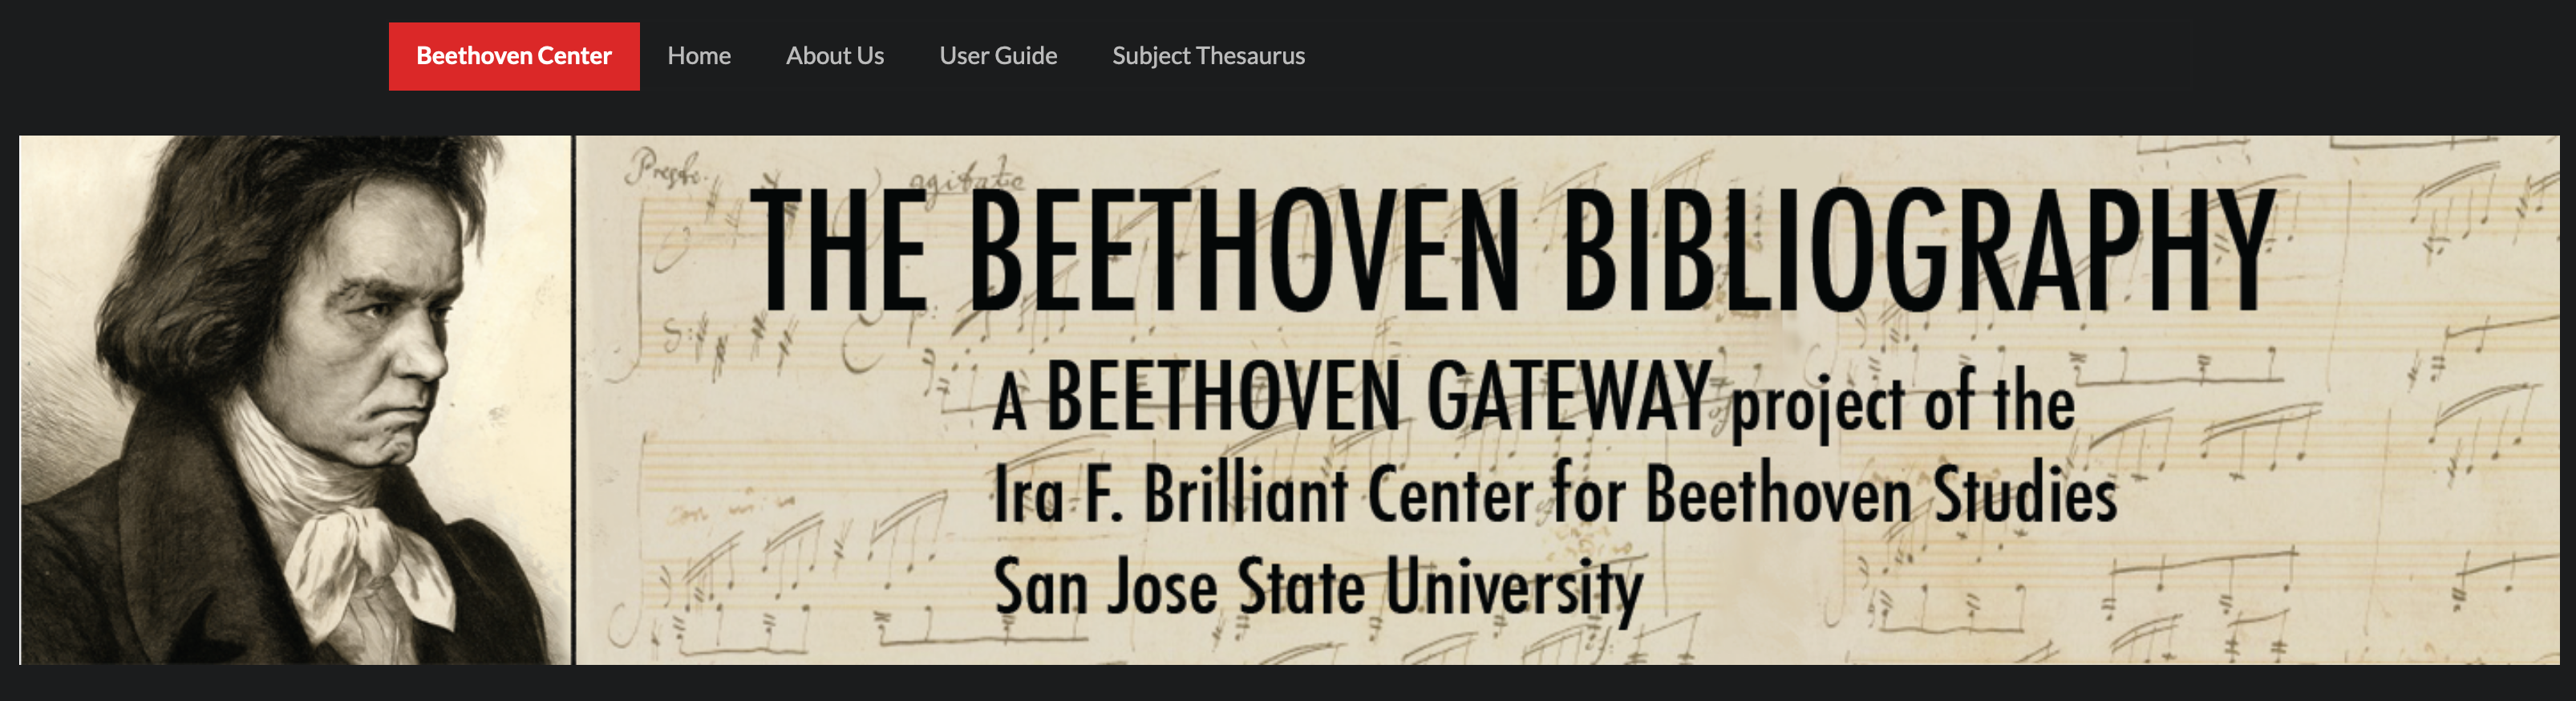 Banner for the Beethoven Bibliography Database